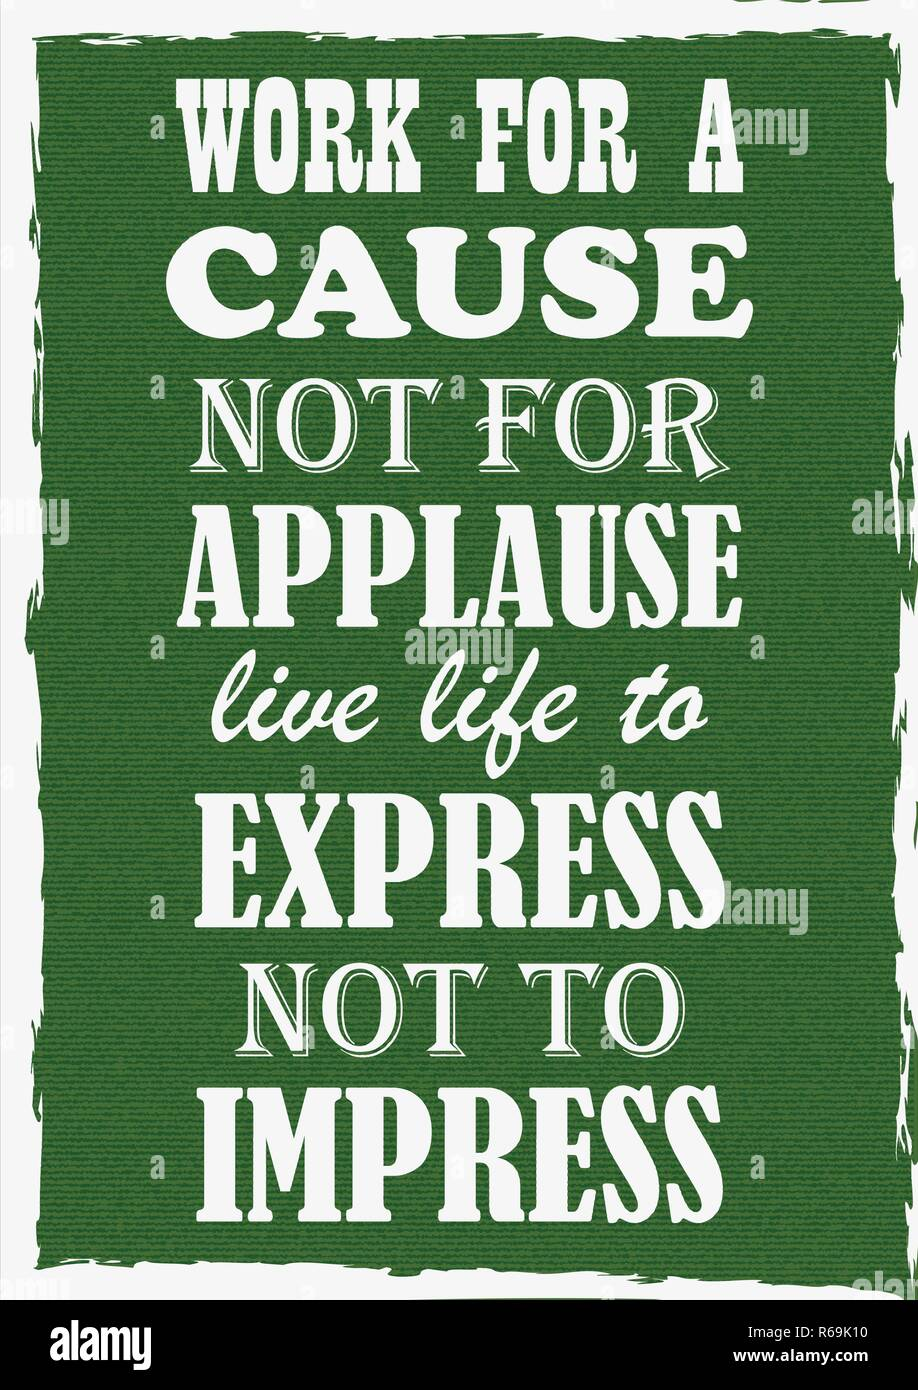 Inspiring Motivation Quote Work For A Cause Not For Applause Live